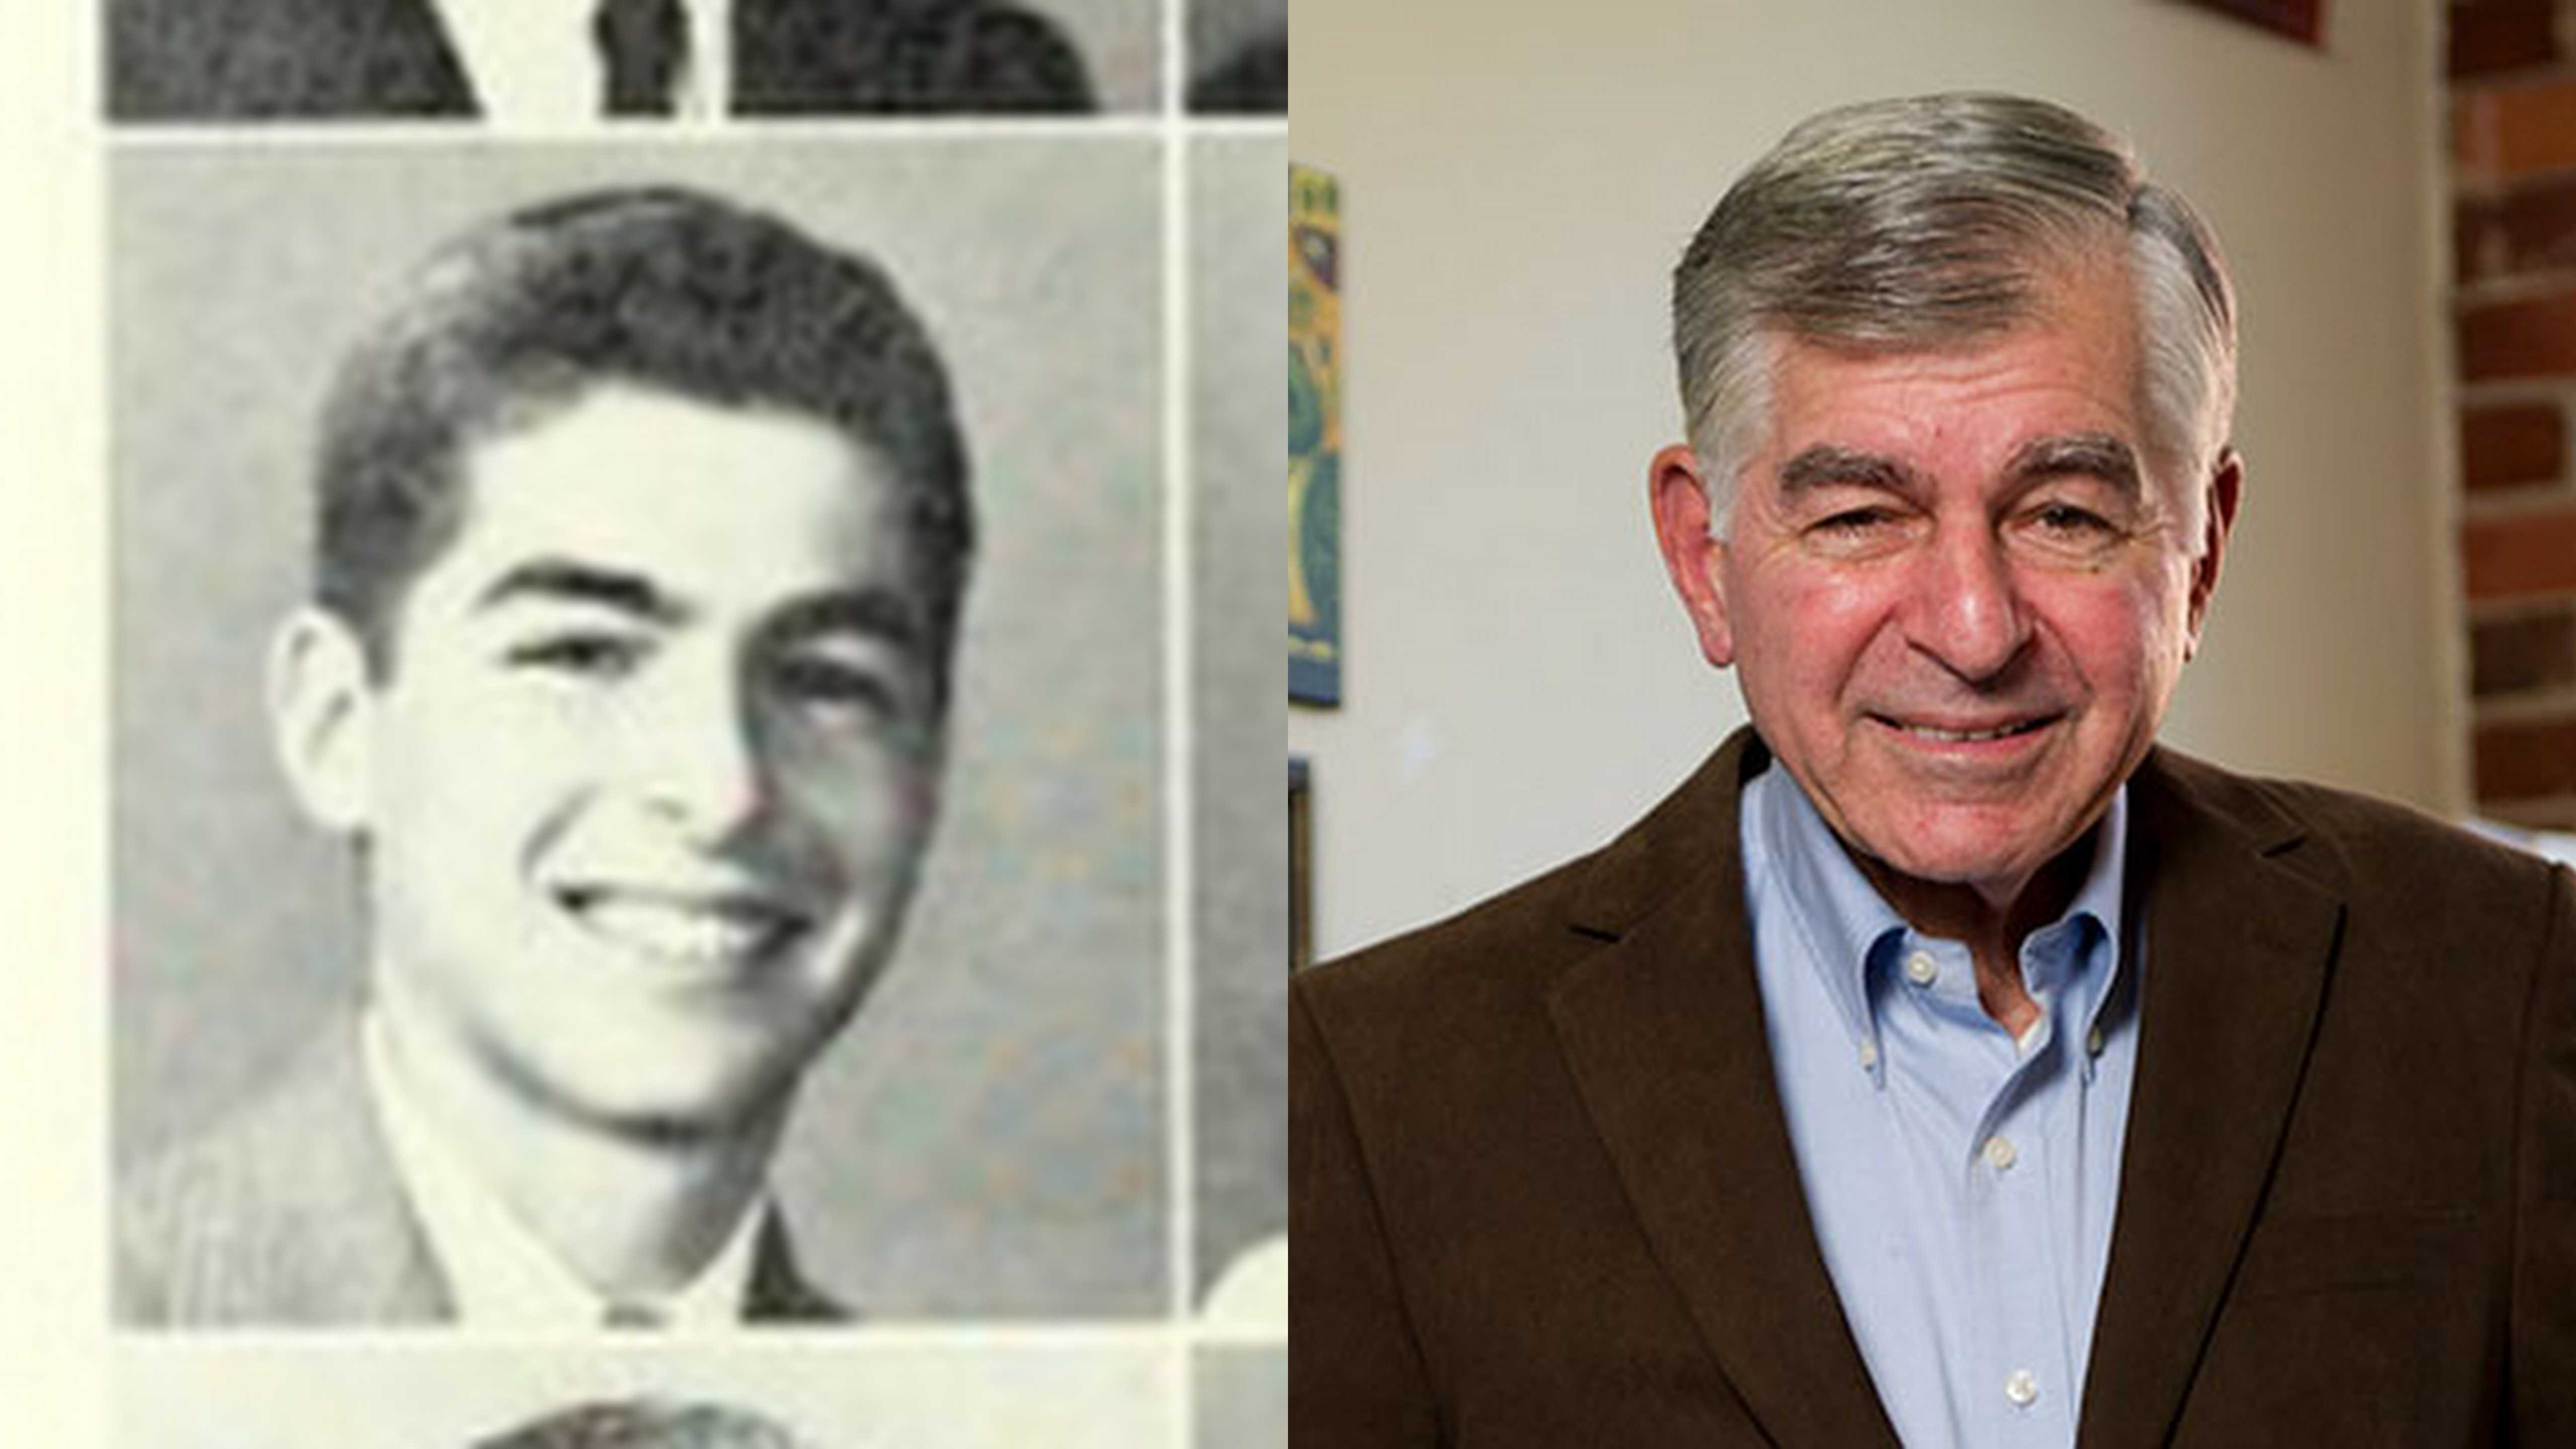 Michael Dukakis '51 then and now. Photos from Murivian '51 (left) and provided by Michael Dukakis (right).